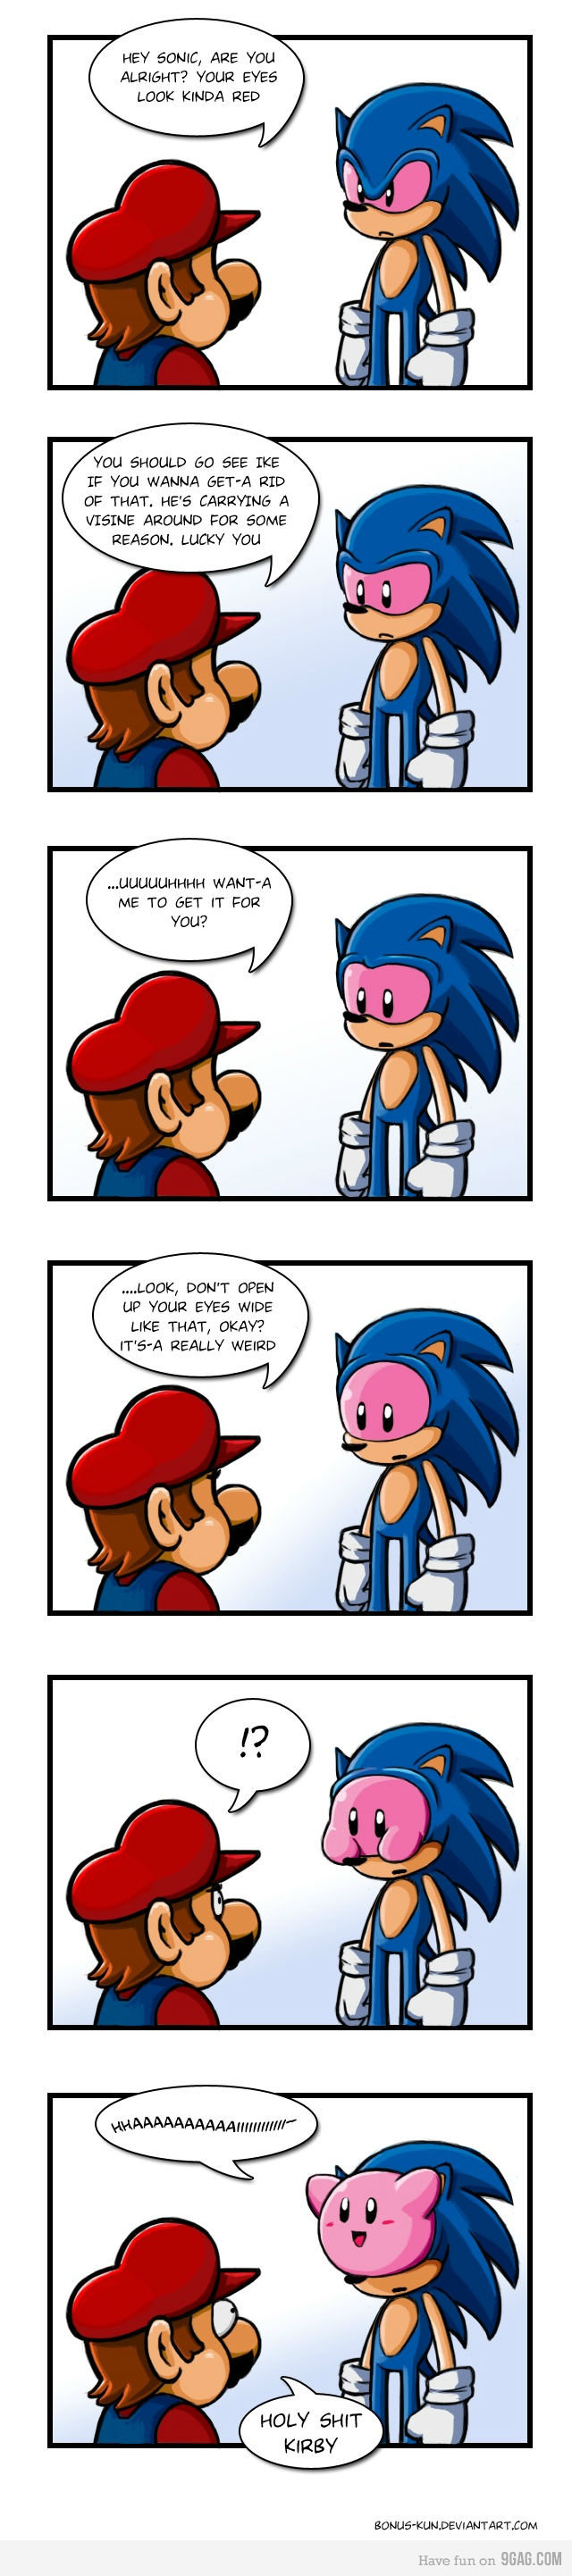 The thruth behind Sonic. Read title. My first upload here (no, that is not a thumb-whoring strategy).. HEY fault; ARE You mun LOOK KINOA RED YOU ISHOULD GO AEE